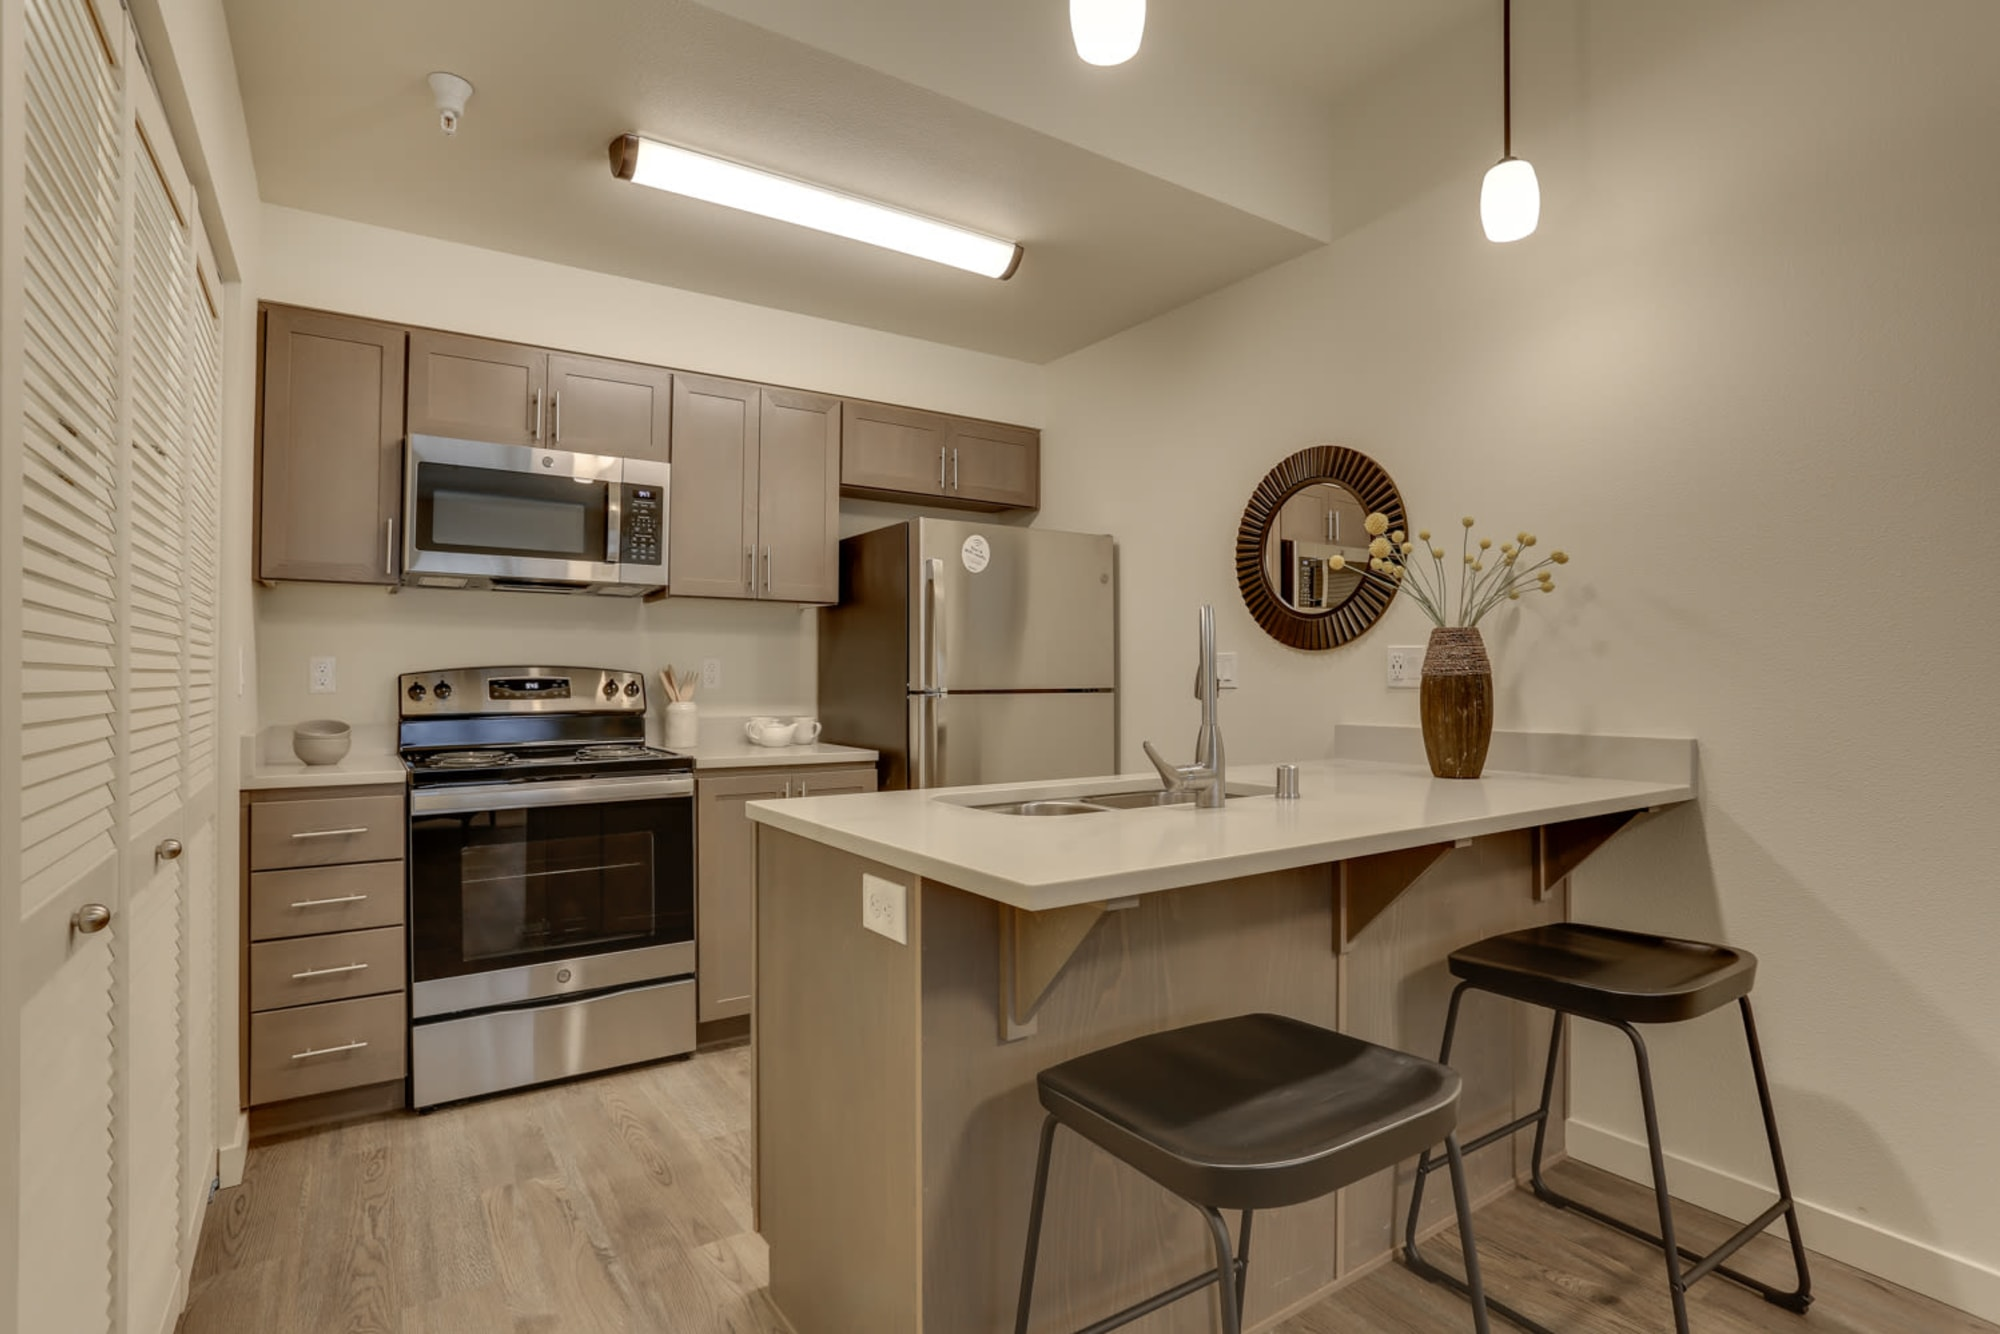 A kitchen with stainless appliances at Haven Hills in Vancouver, Washington